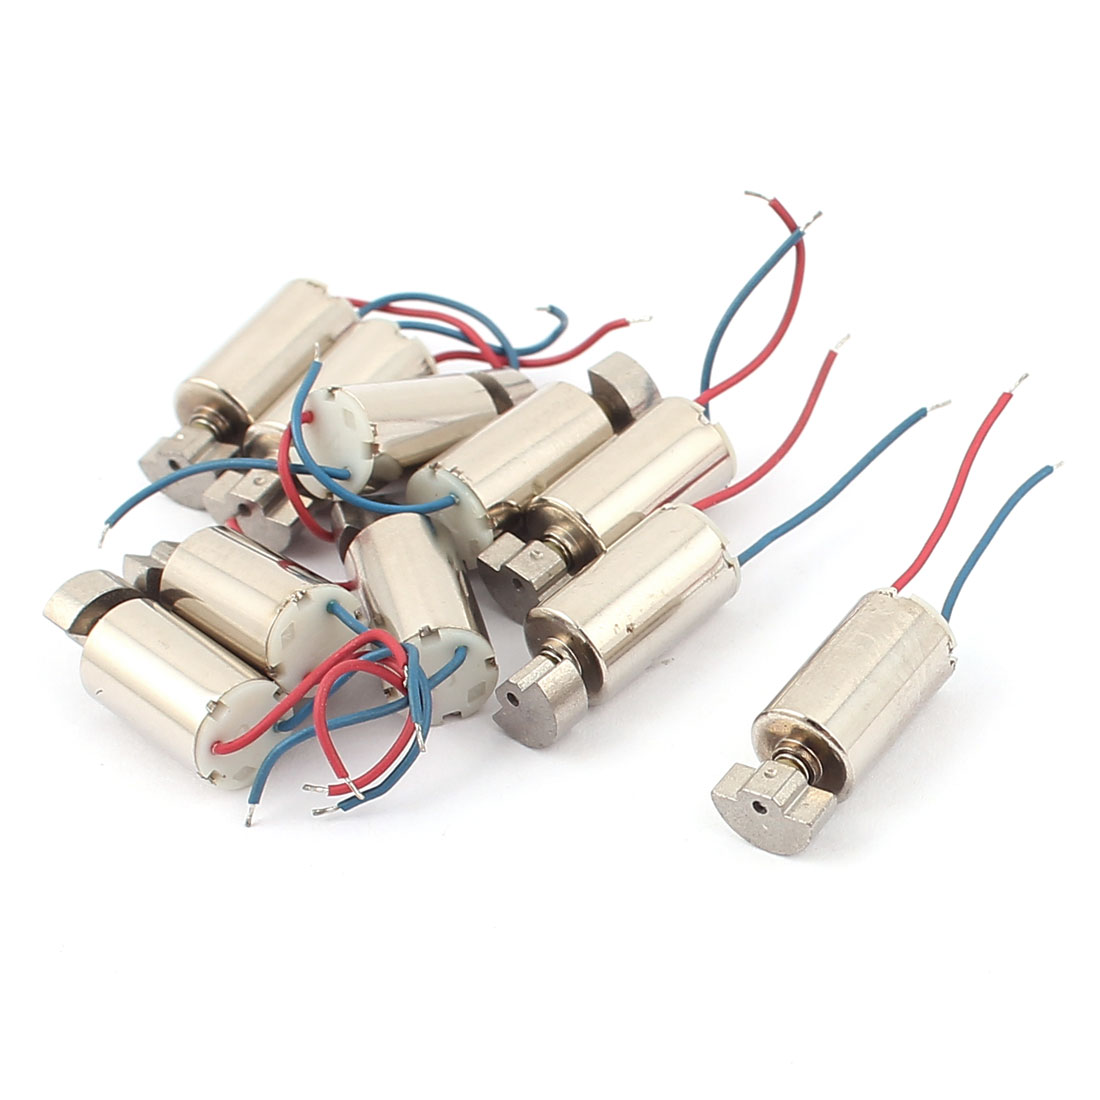 10pcs 3-6V 8000RPM High Speed Electric Micro DC Vibration Motor for RC Model Toy